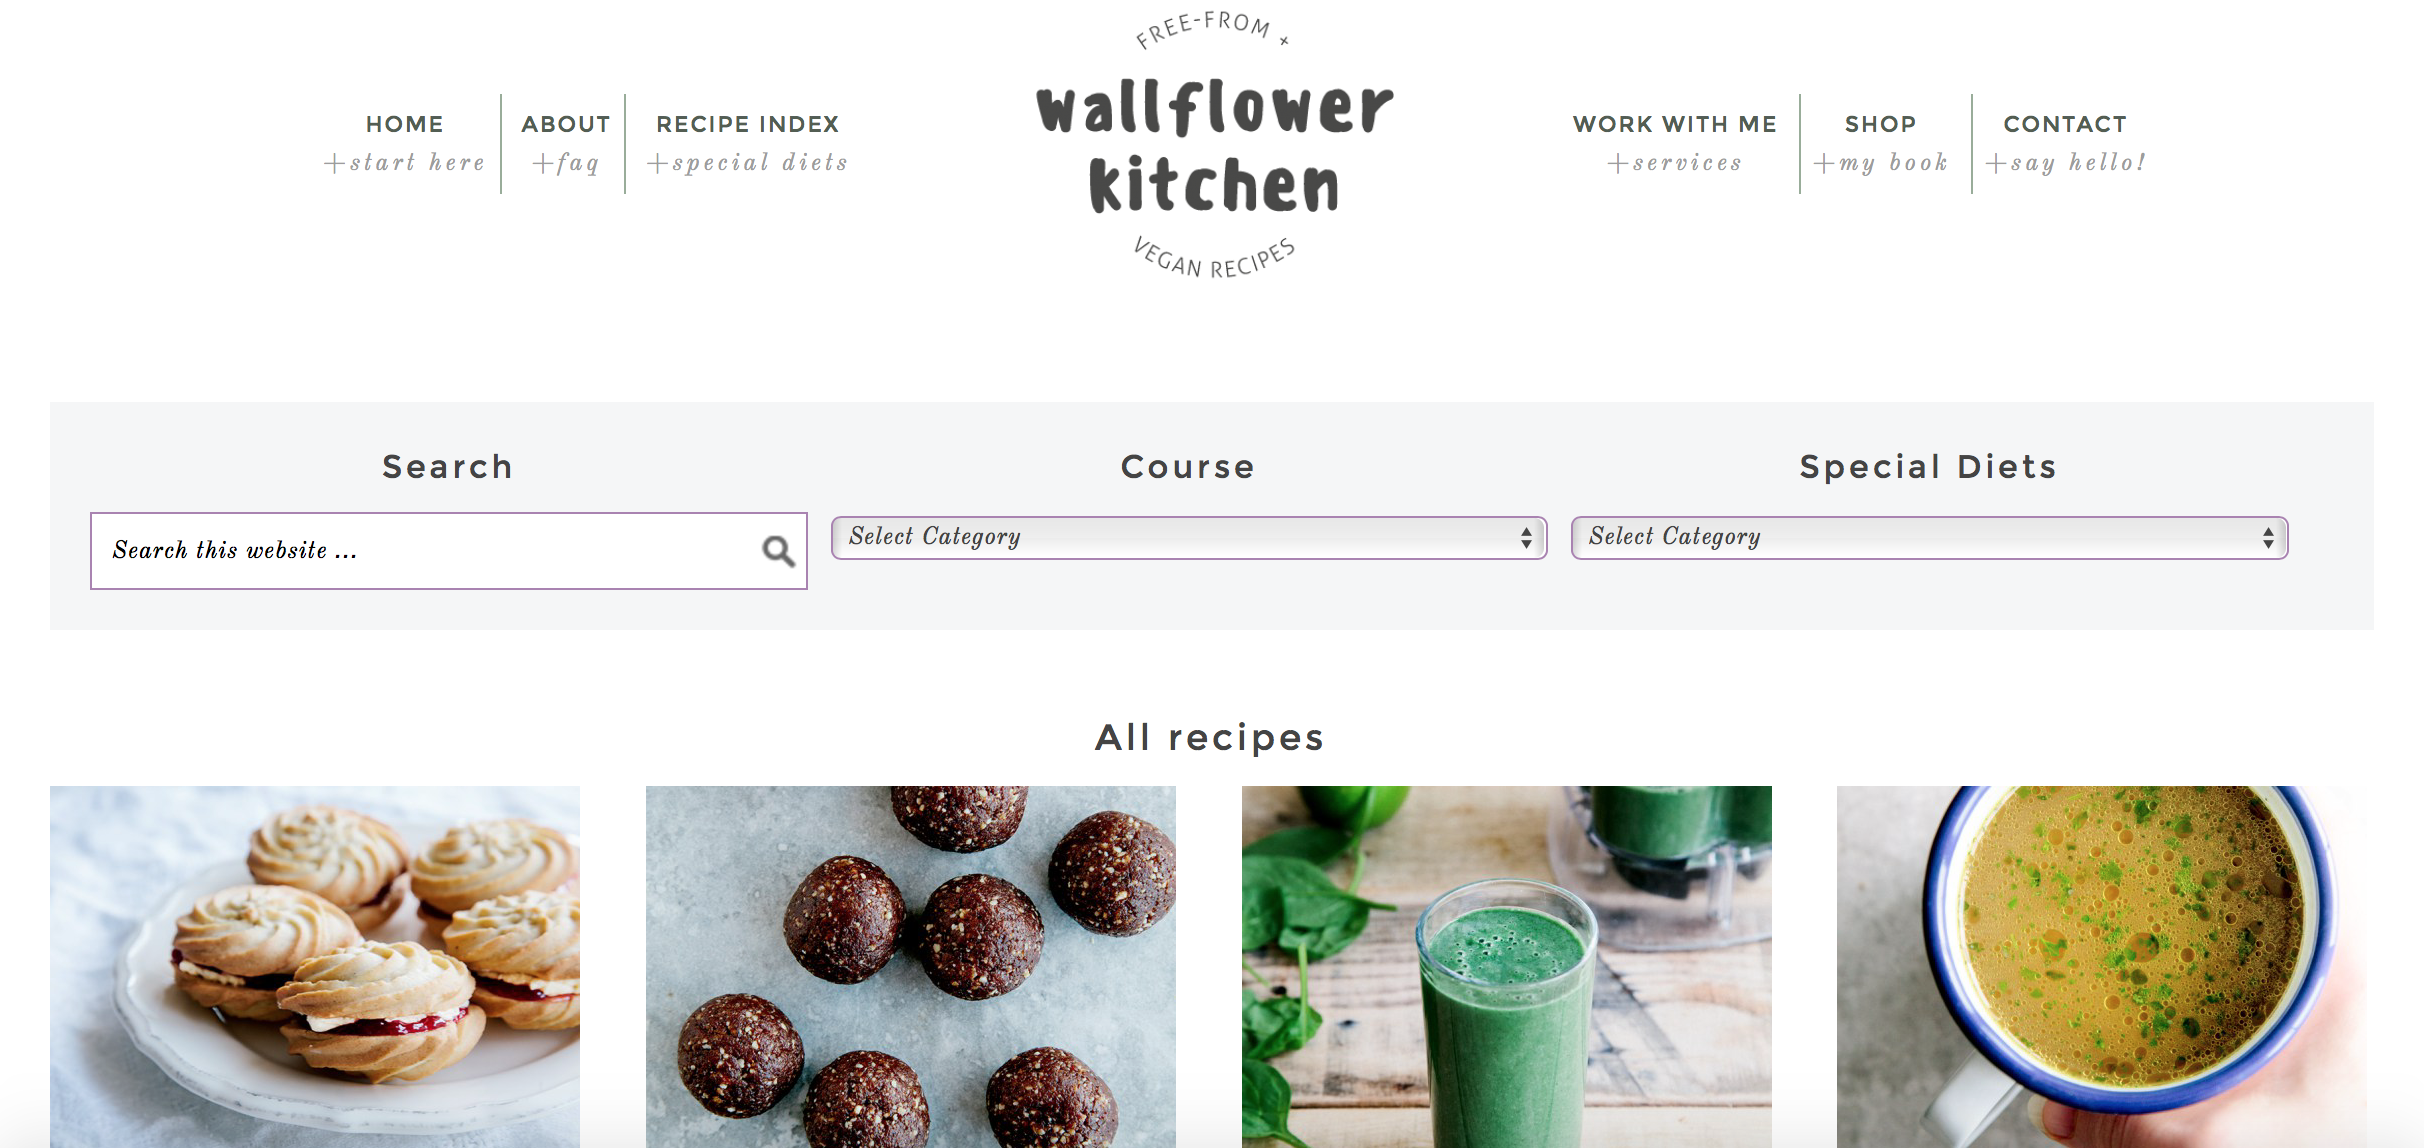 wallflower-kitchen-recipes